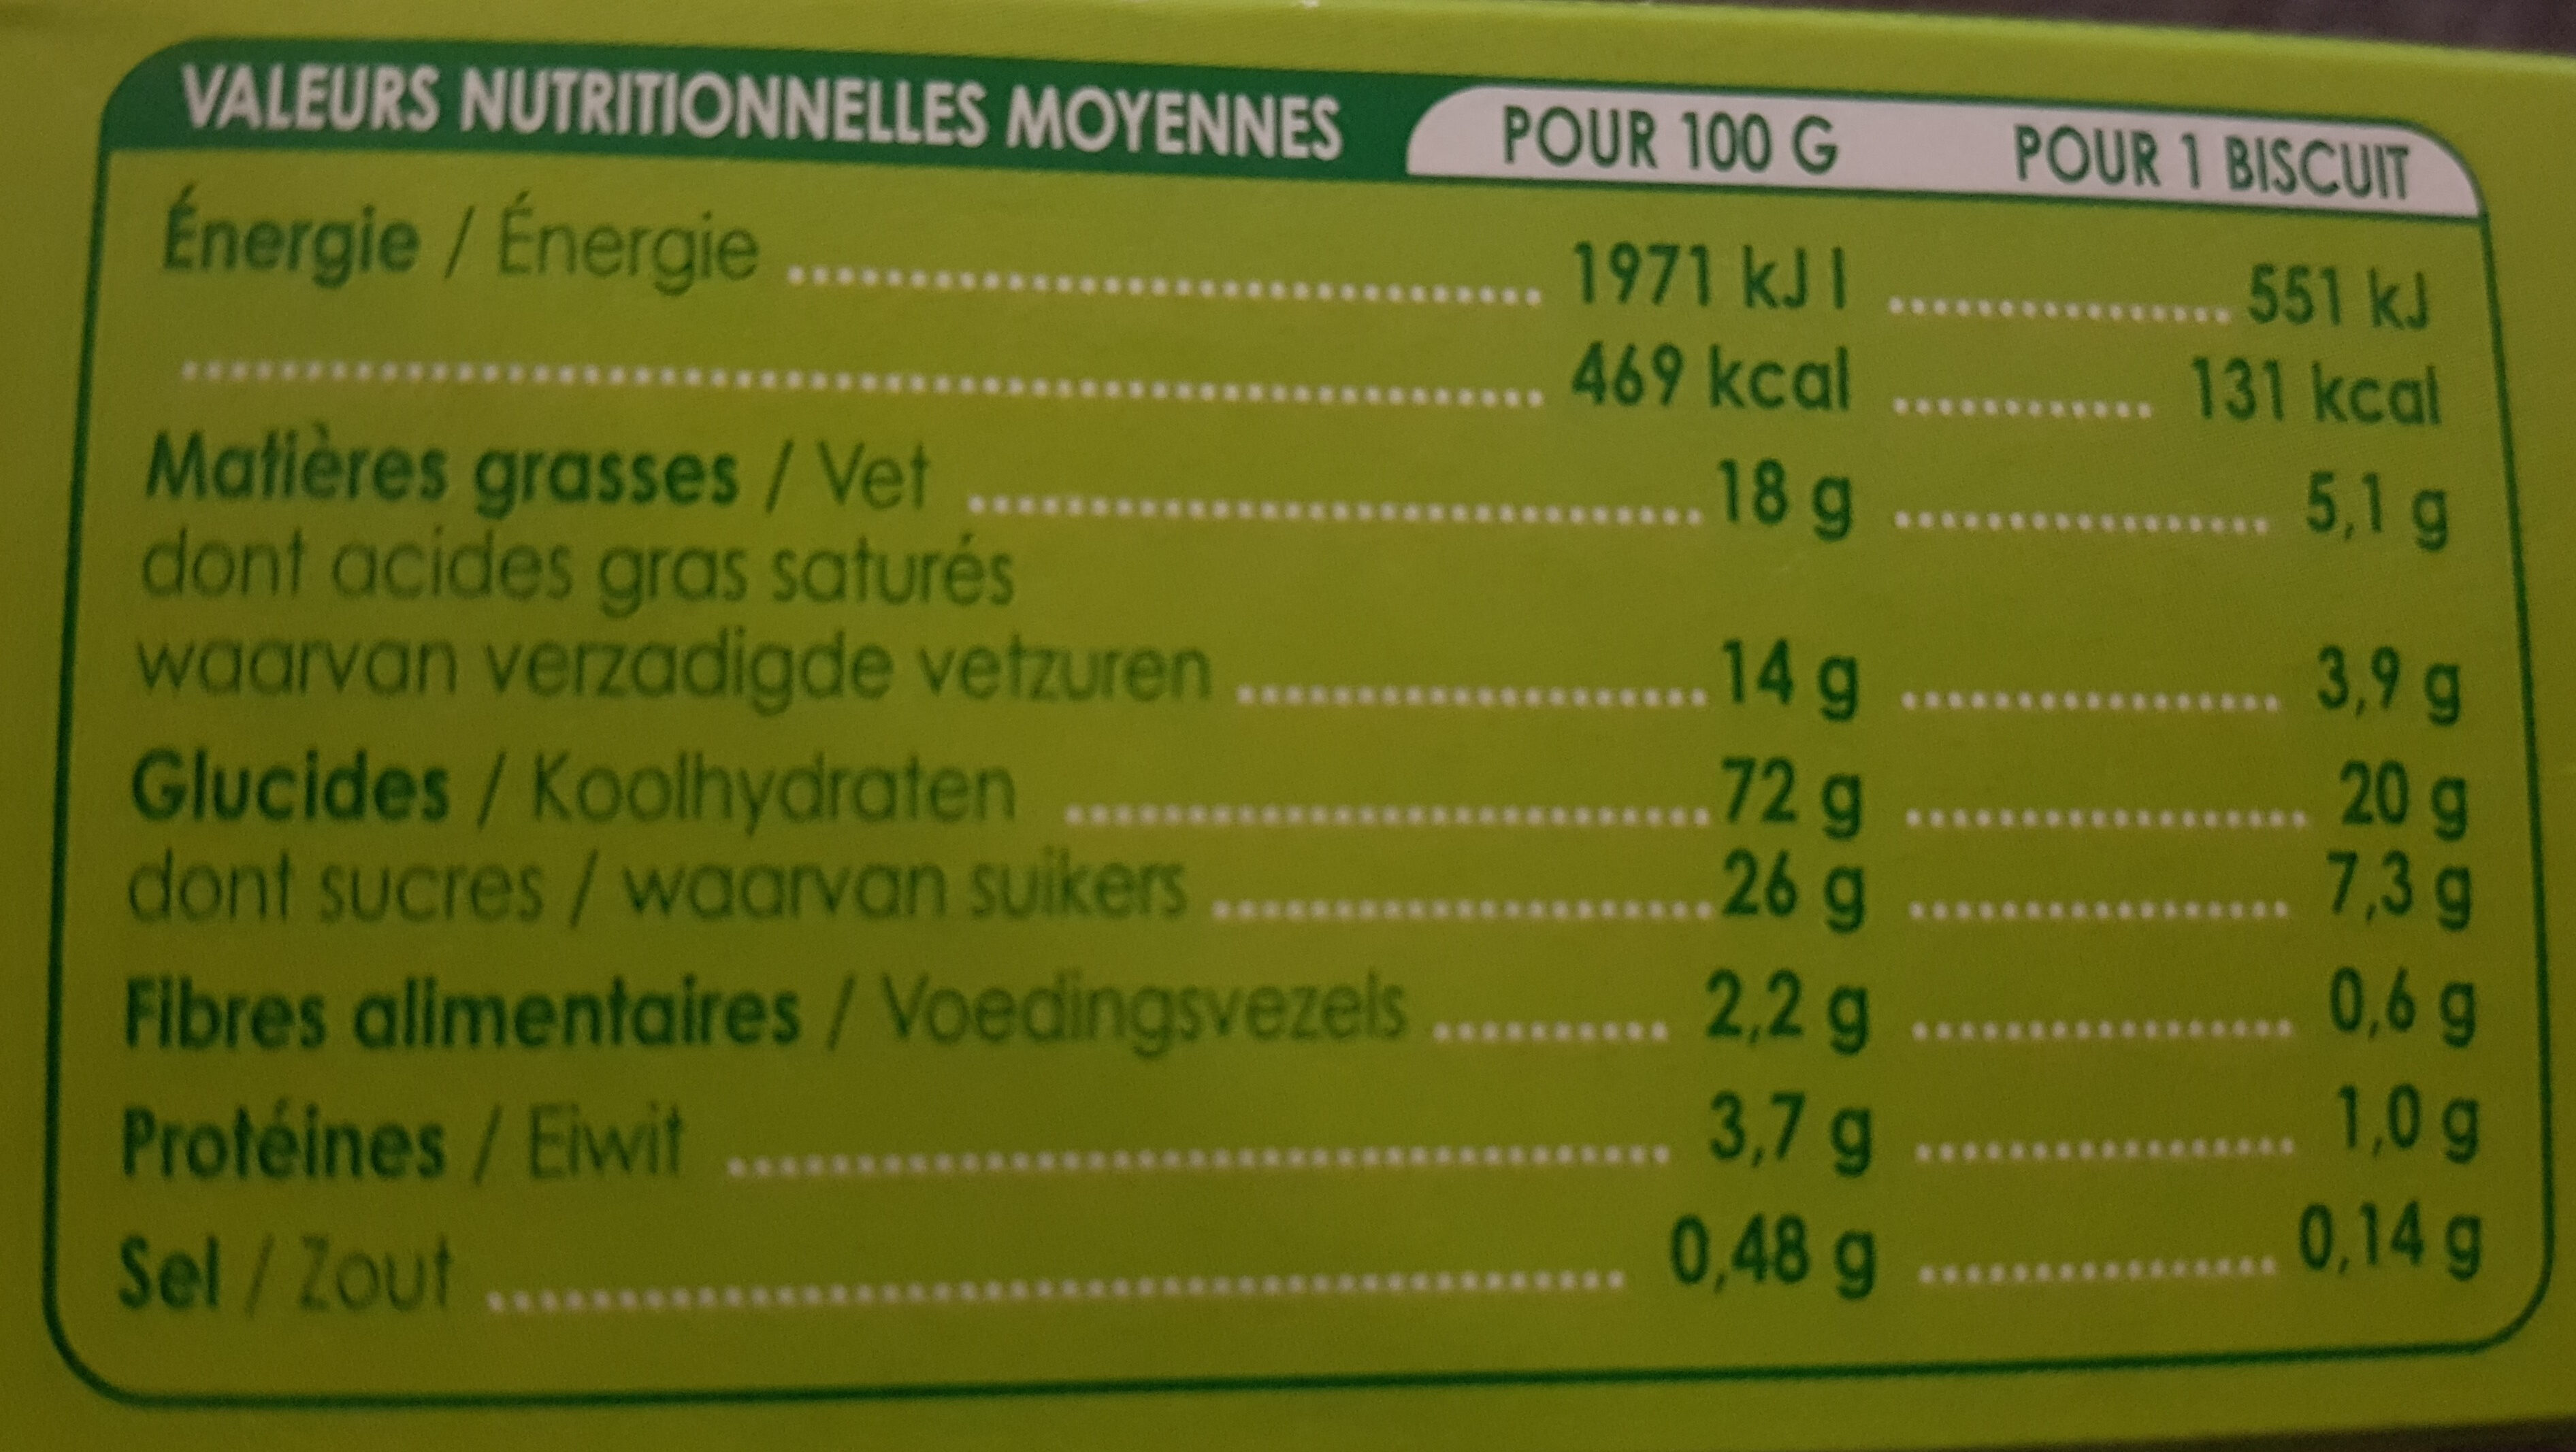 biscuits coeur cacao - Nutrition facts - fr